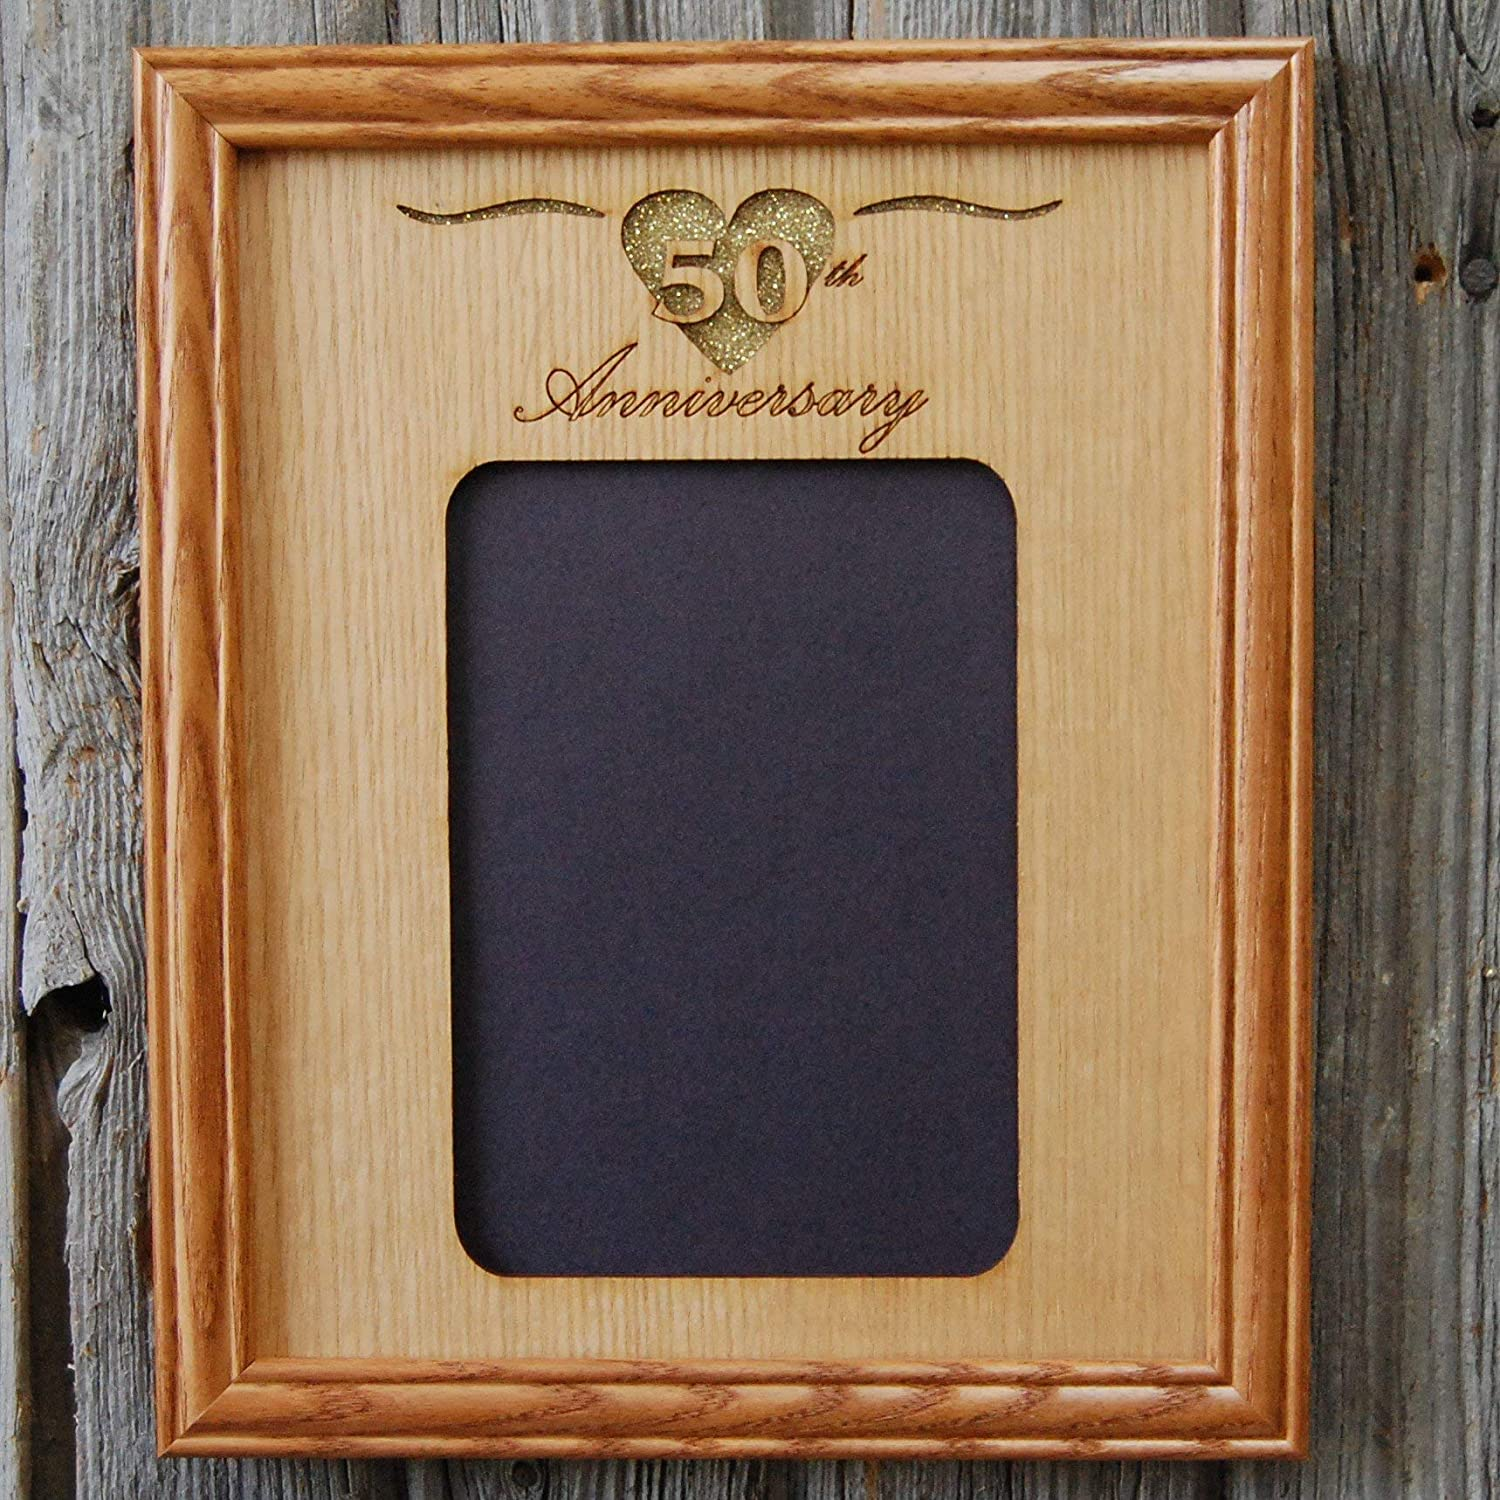 Holds 5x7 Photo 8x10 50th Anniversary Picture Frame